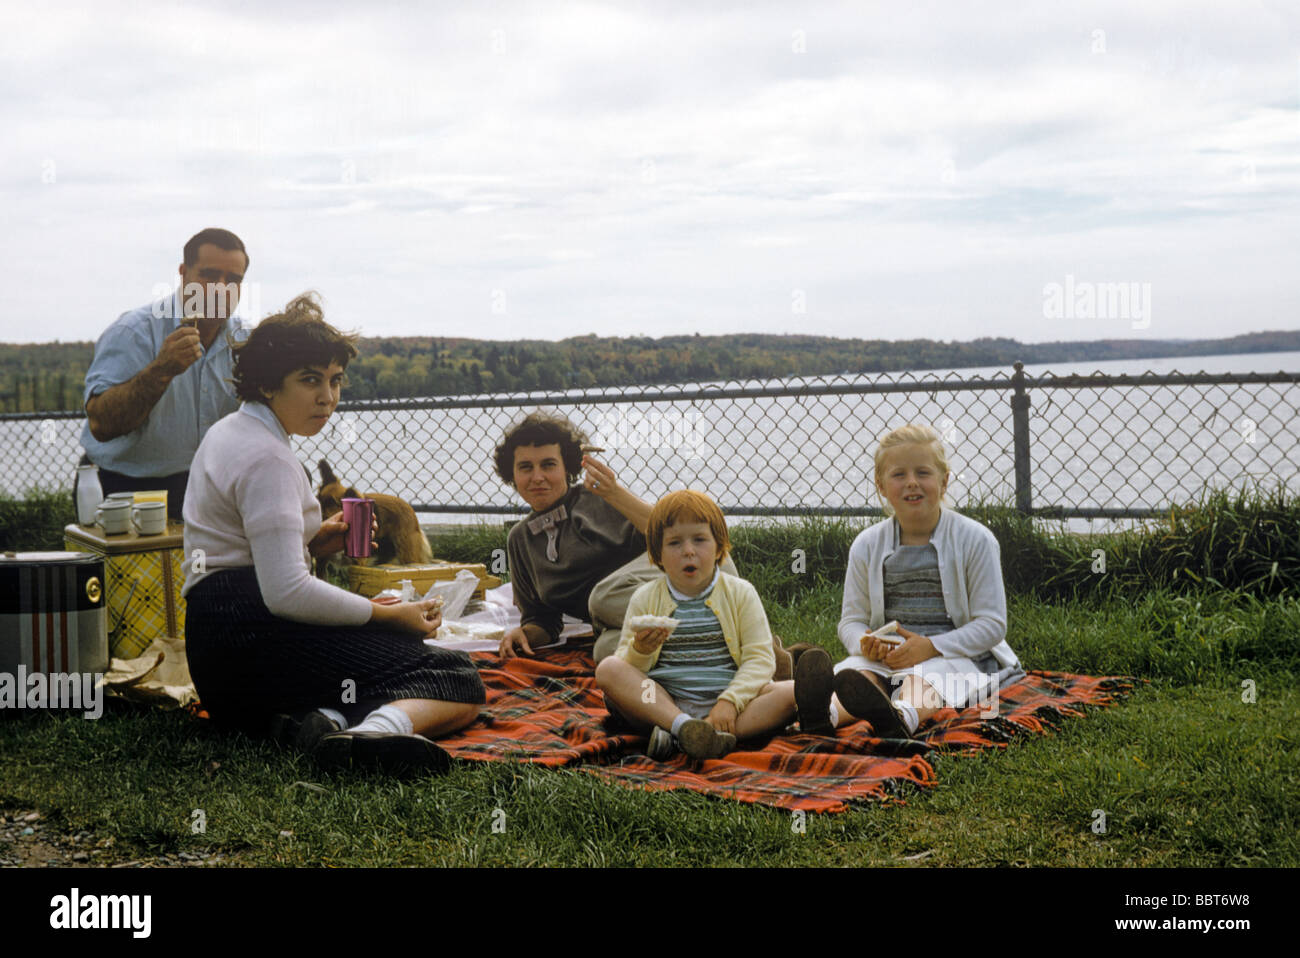 Picnic with family and friends at the lakeside, Canada 1956 - Stock Image